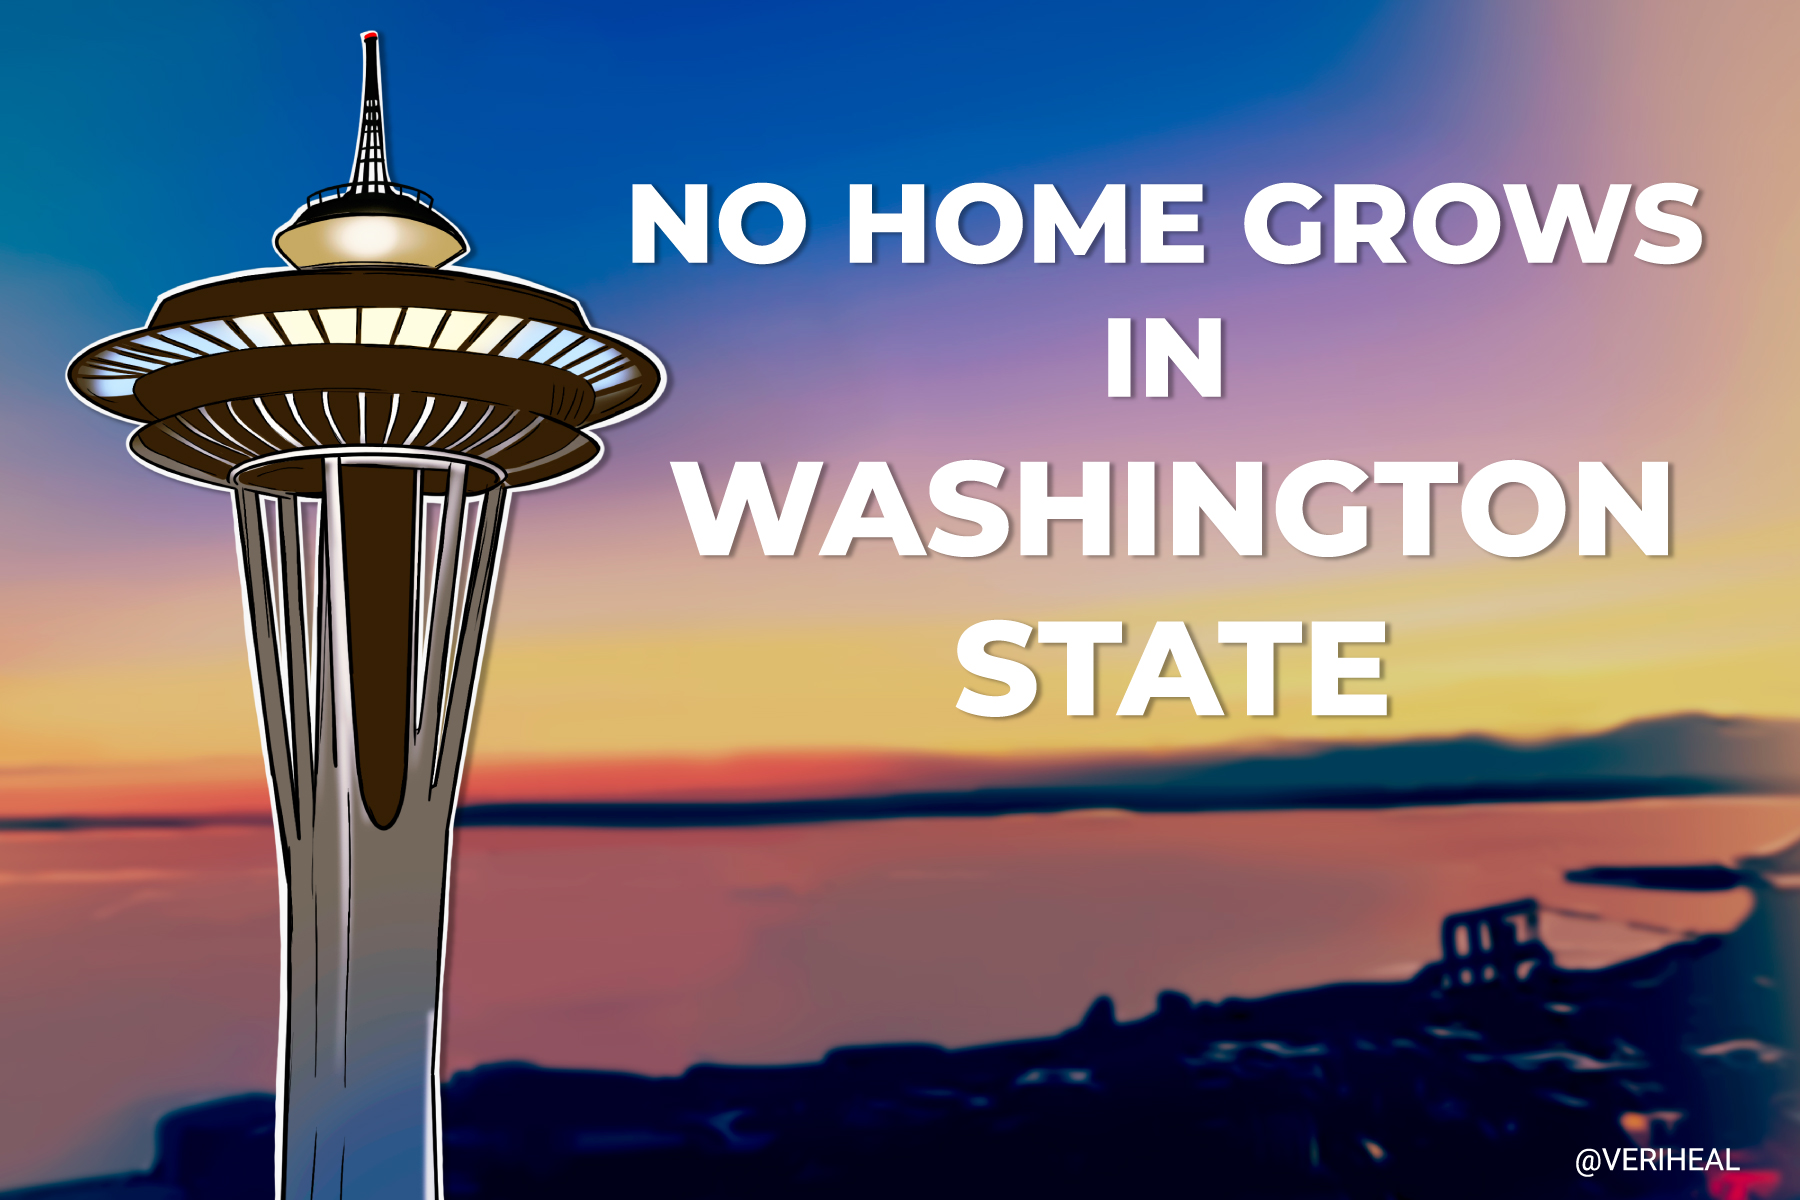 Laws Still Prohibit Cannabis Home Grows in Washington State